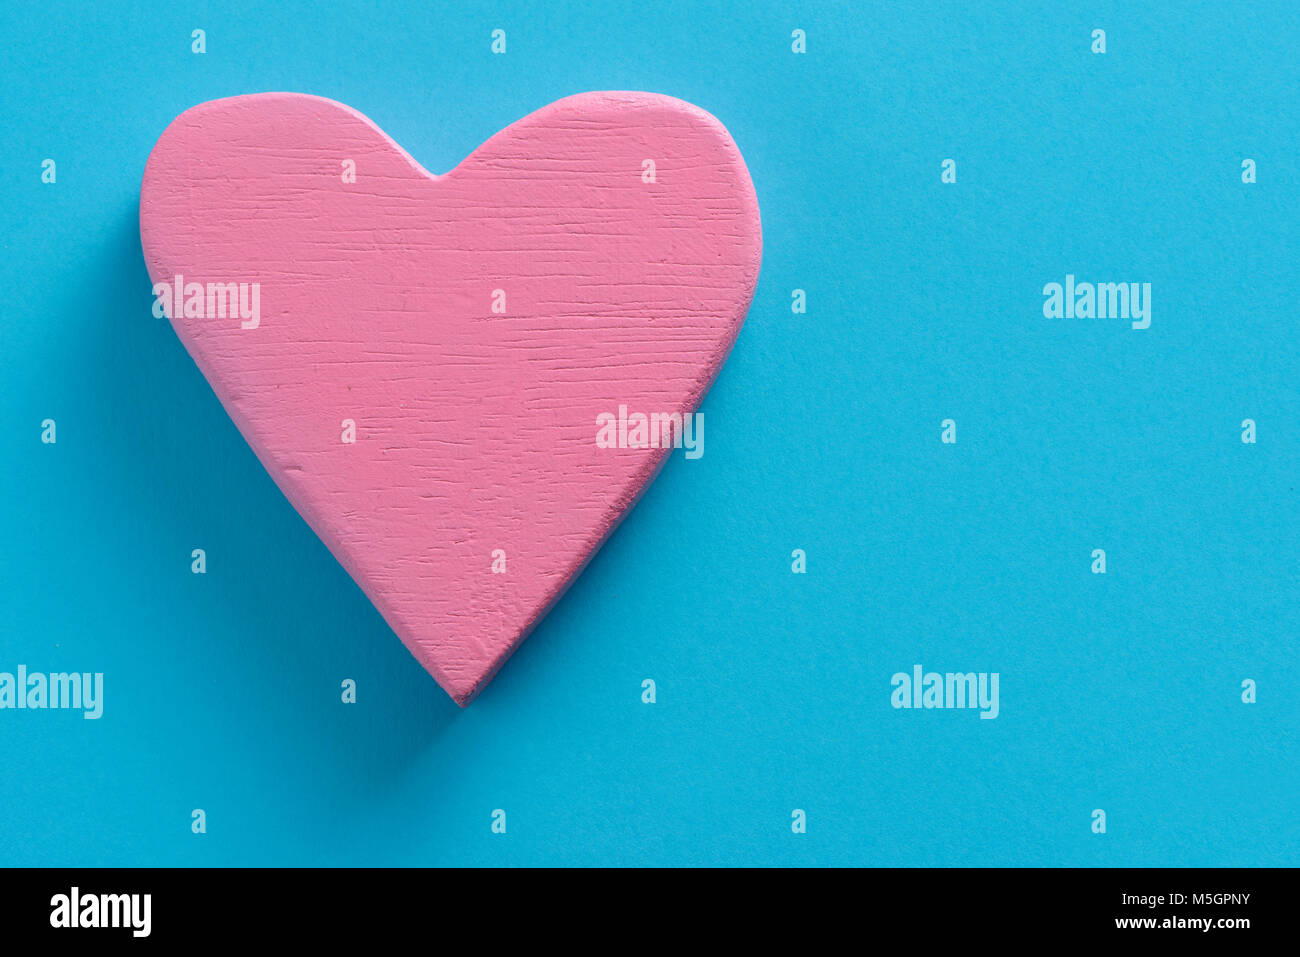 closeup of a pink three-dimensional heart on a blue background, with a blank space on the right - Stock Image